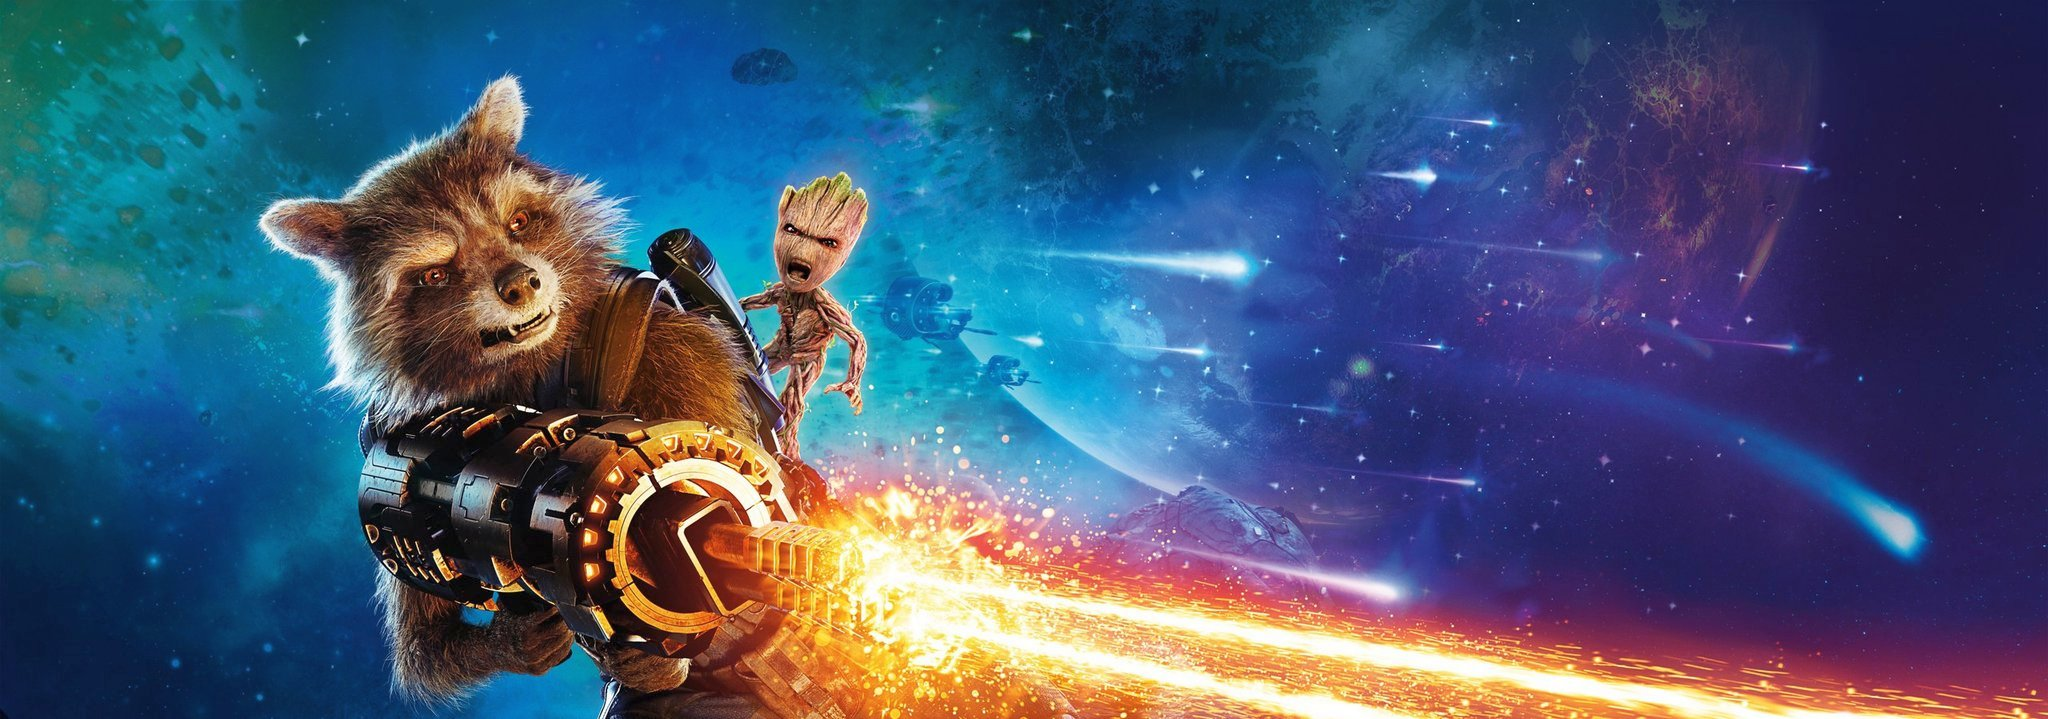 Guardians of the Galaxy Vol. 2 Banners Revealed